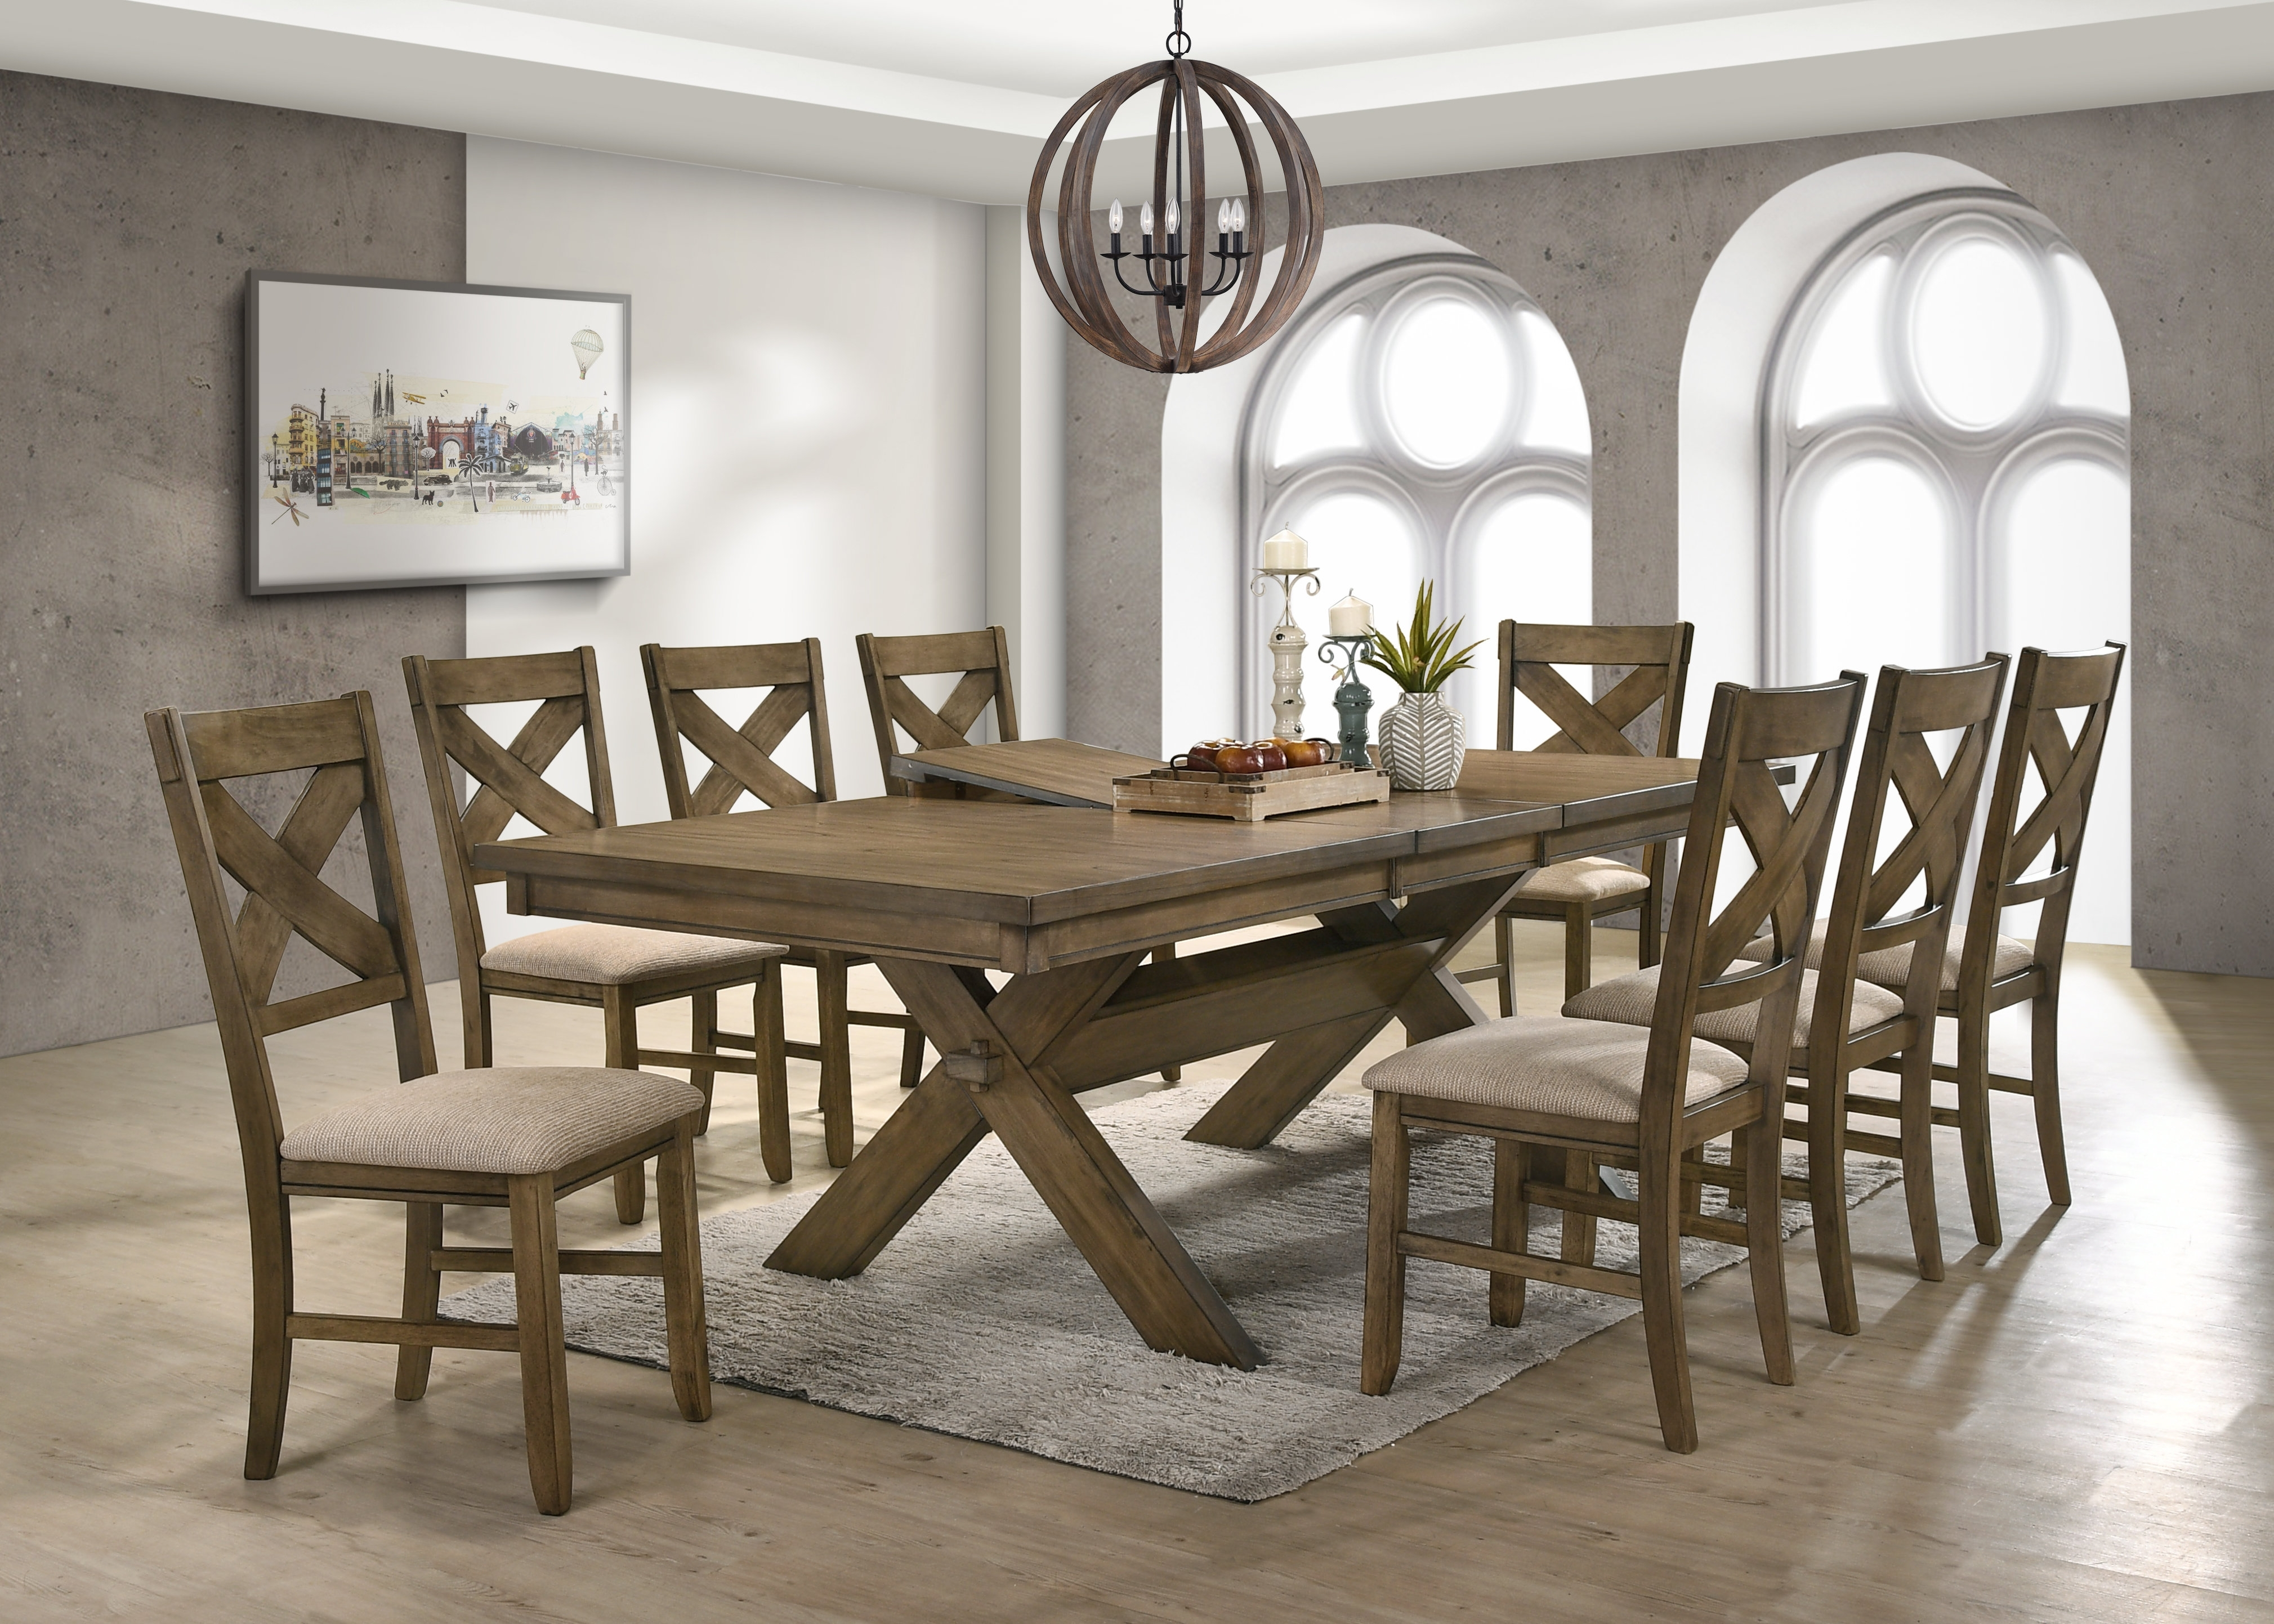 Gracie Oaks Poe 9 Piece Extendable Dining Set | Wayfair For Current Chandler 7 Piece Extension Dining Sets With Wood Side Chairs (Image 13 of 20)